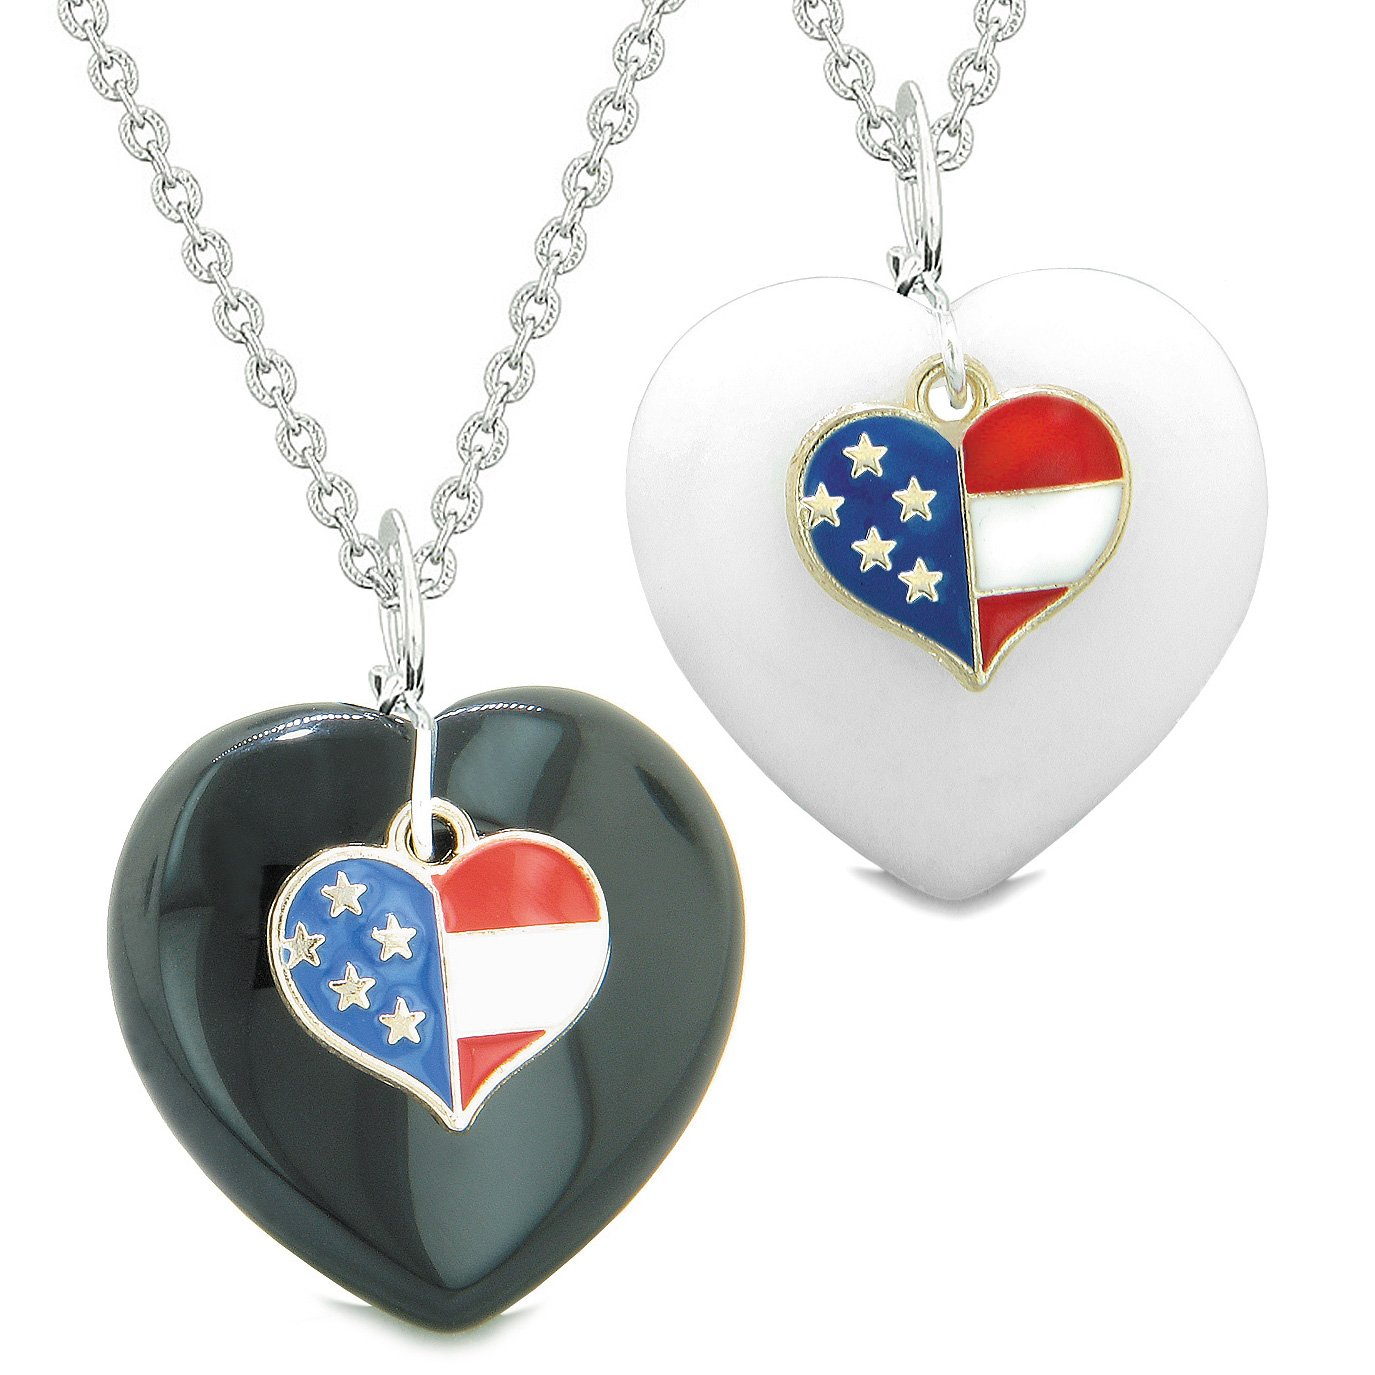 Proud USA Flag Super Heart Charm Love Couples or BFF Set Black Agate White Quartz Amulet Necklaces